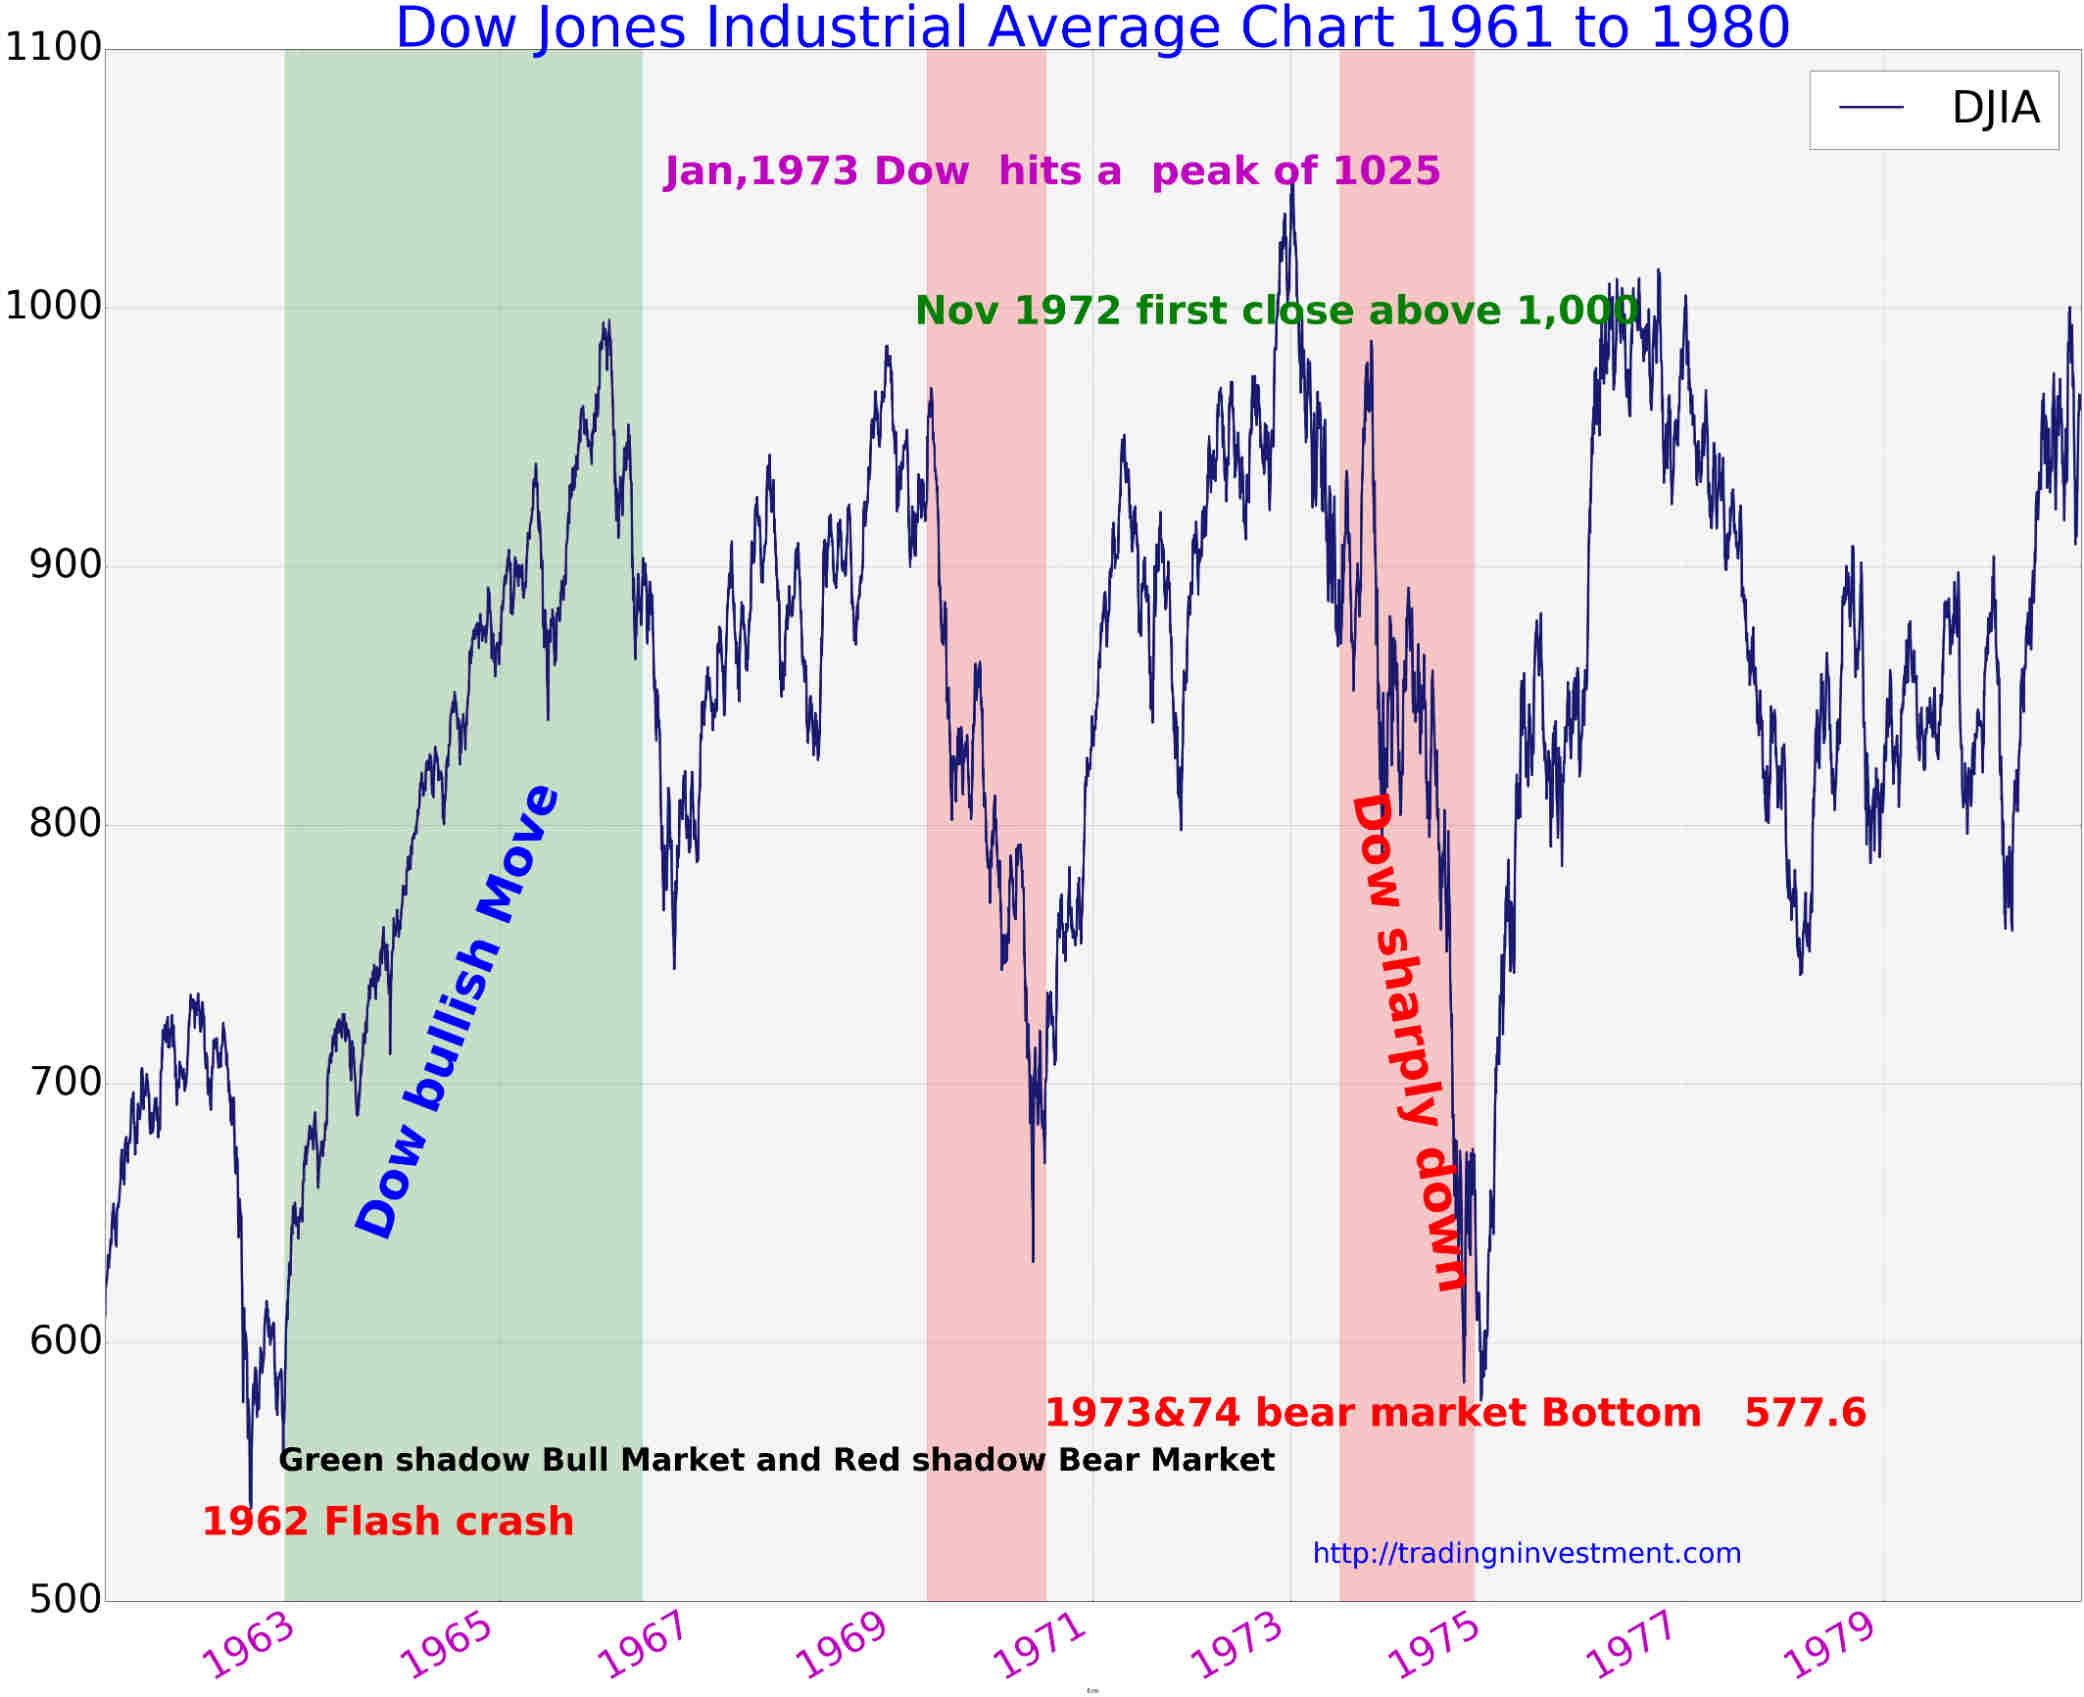 Dow Jones Industrial Average Chart 1961 to 1980